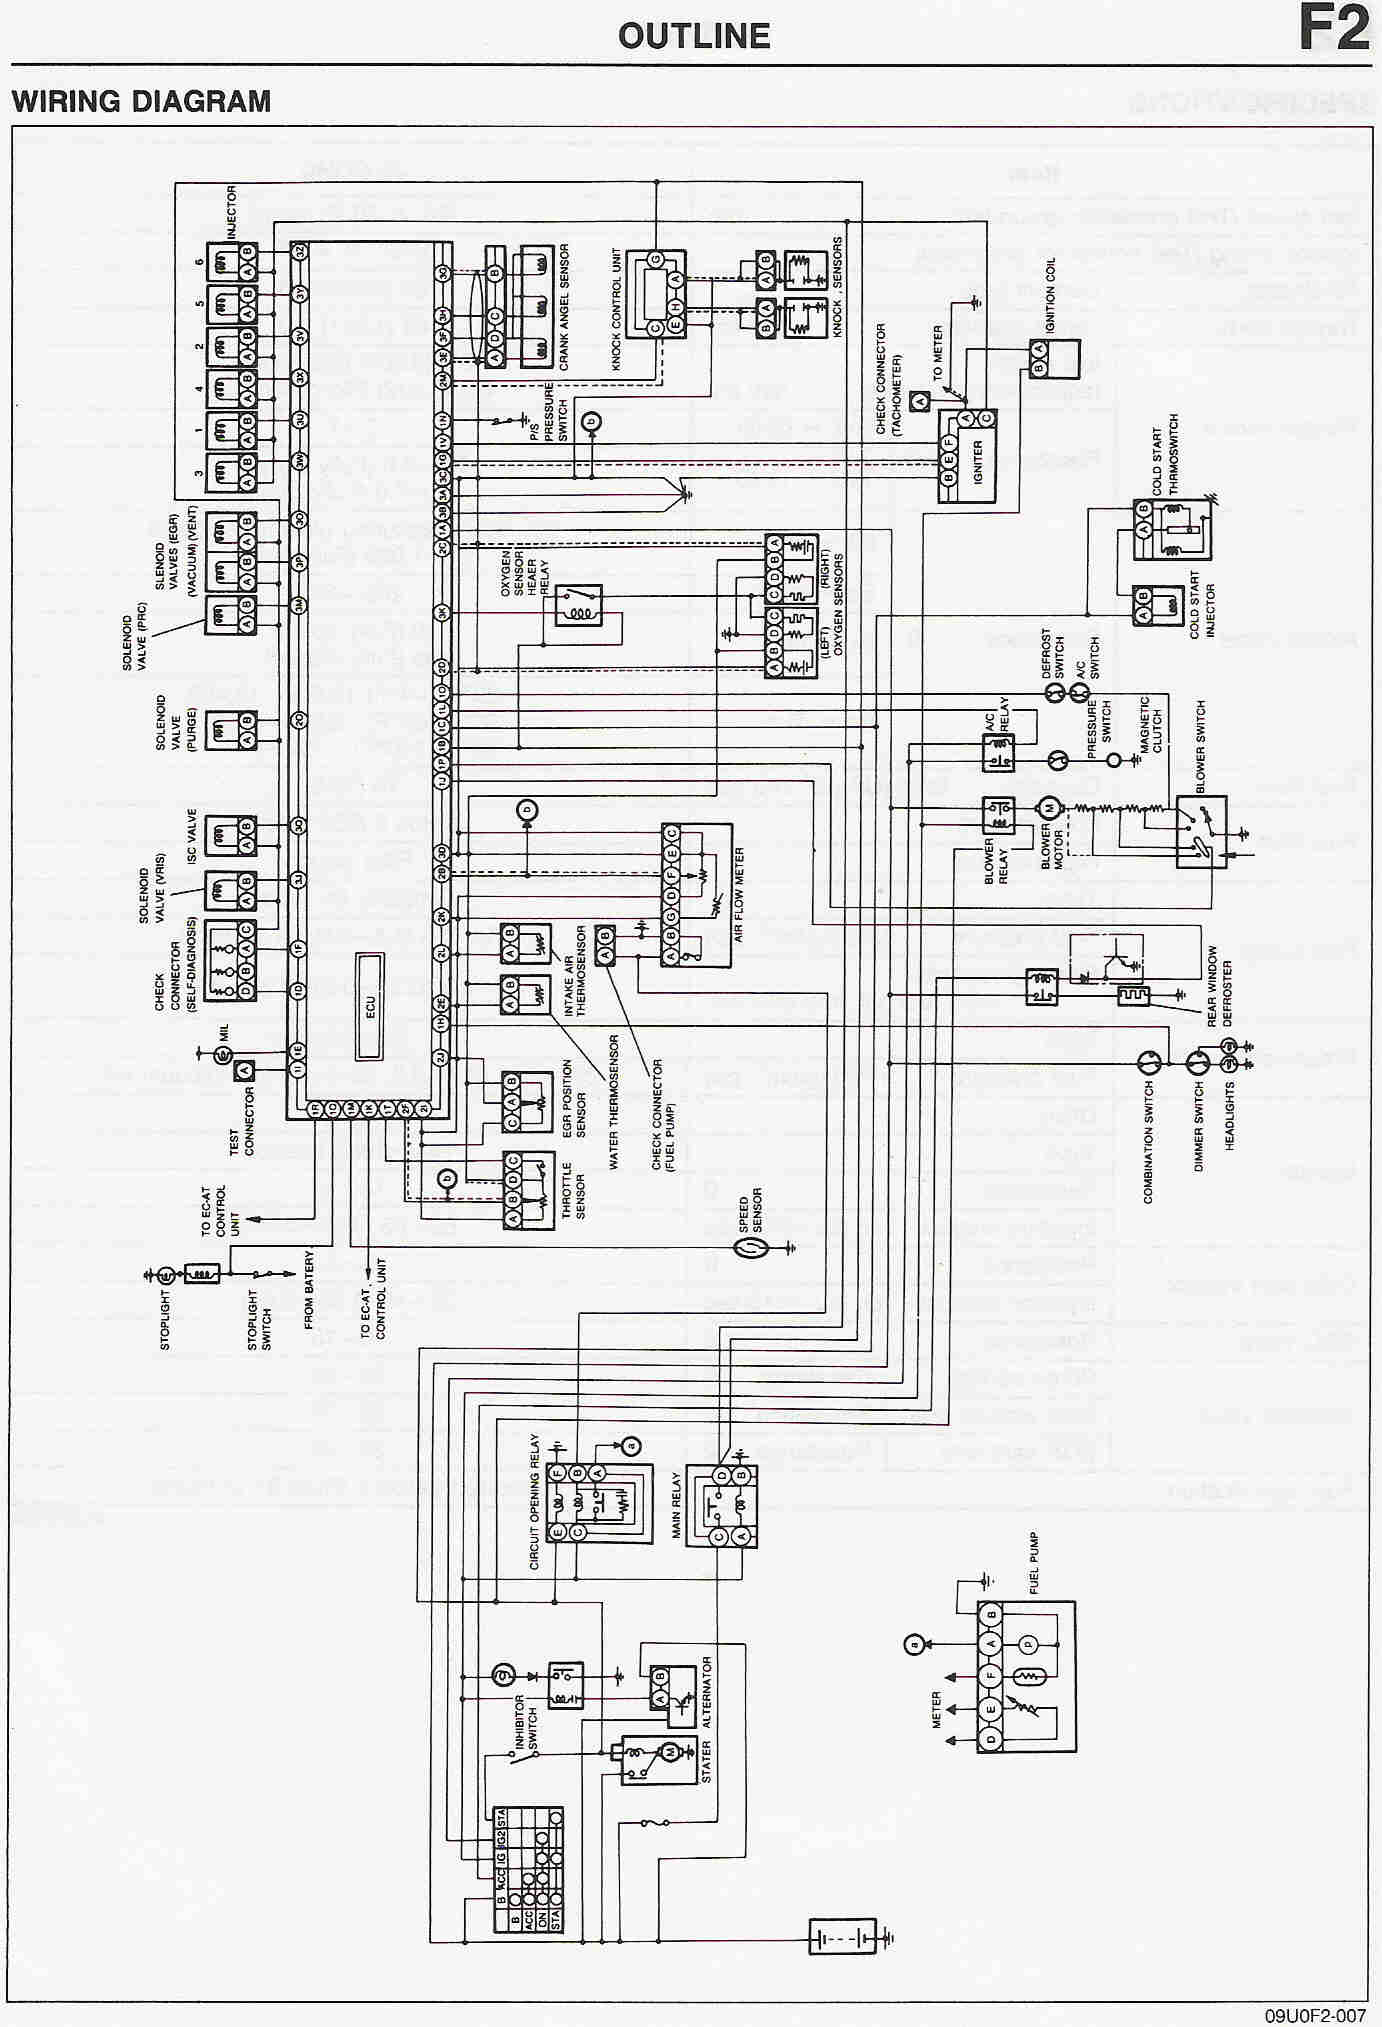 Mazda Luce Wiring Diagram - Wiring Diagram G9 on mazda mpv wiring diagram, mazda 3 wiring diagram, mazda b2000 parts diagram, mazda b2200 vacuum diagram, mazda b2000 vacuum diagram, mazda b2000 fuel system, mazda b2200 wiring-diagram, mazda b2000 engine diagram, mazda protege wiring diagram, mazda b2200 engine diagram, mazda 5 wiring diagram, mazda b2200 carburetor diagram, mazda b3000 wiring diagram, mazda b3000 engine diagram, mazda 6 wiring diagram, mazda b2000 carburetor diagram, mazda miata wiring diagram, mazda b2000 starter diagram, mazda tribute wiring diagram, mazda b2200 gas line diagram,